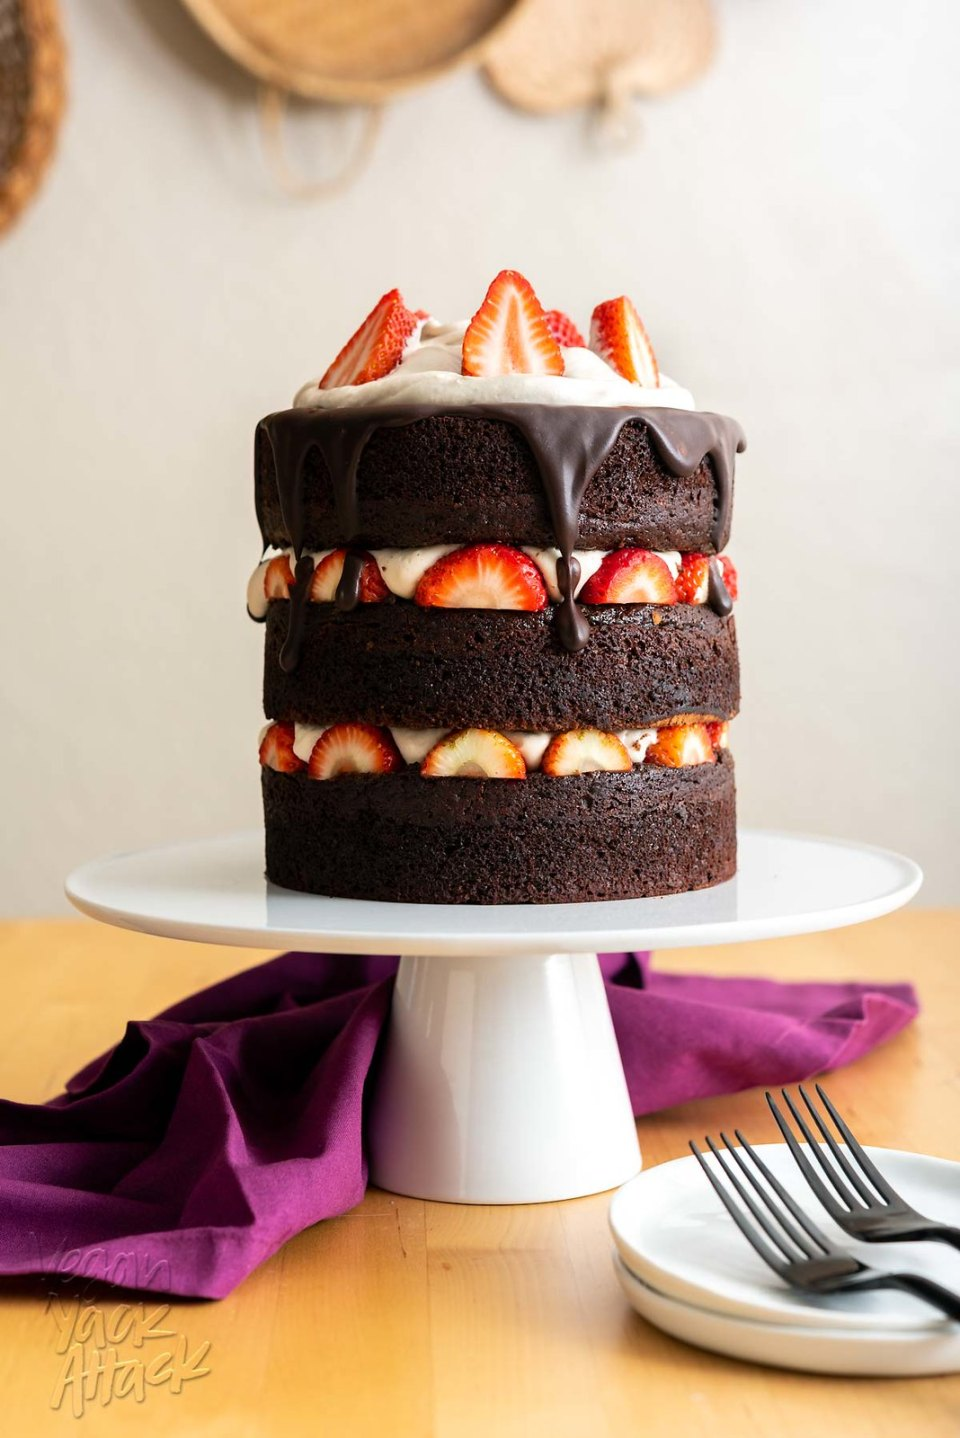 Decadent, dreamy, and absolutely delicious! This vegan chocolate layer cake is perfect for sharing with loved ones, on special occasions. #vegan #valentinesday #chocolatecake #veganyackattack